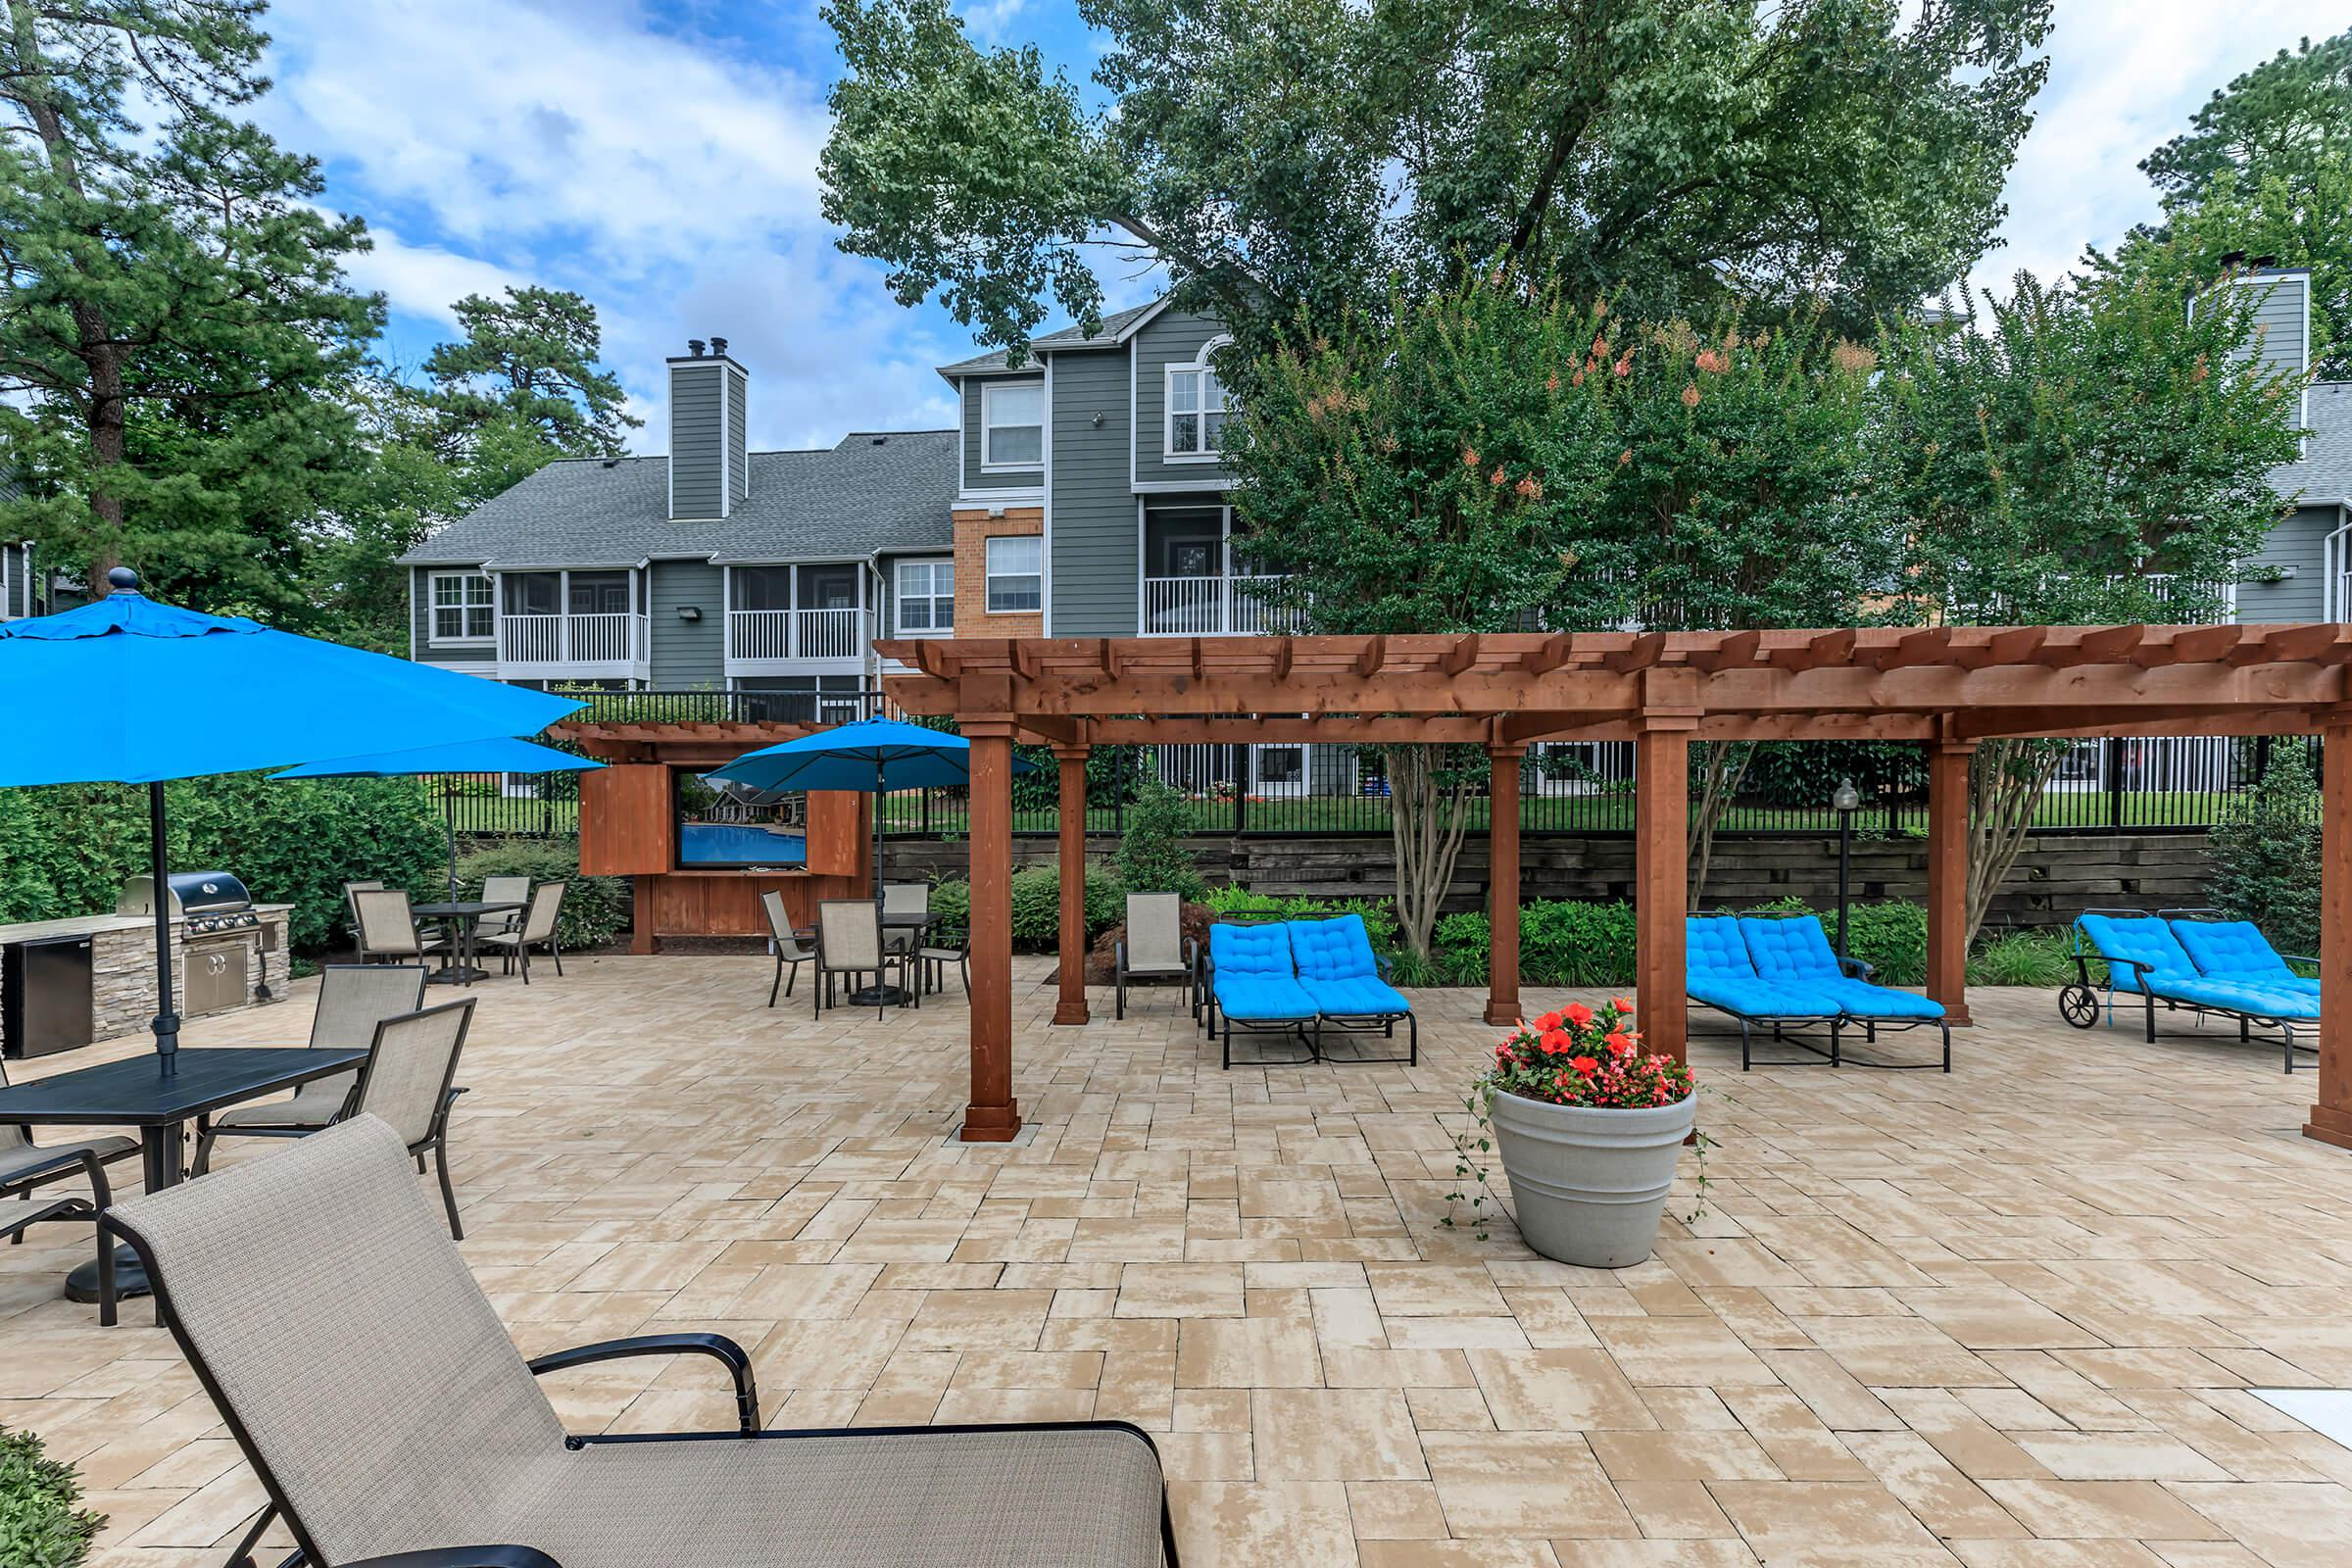 Patio at The Ashberry in Pasadena MD